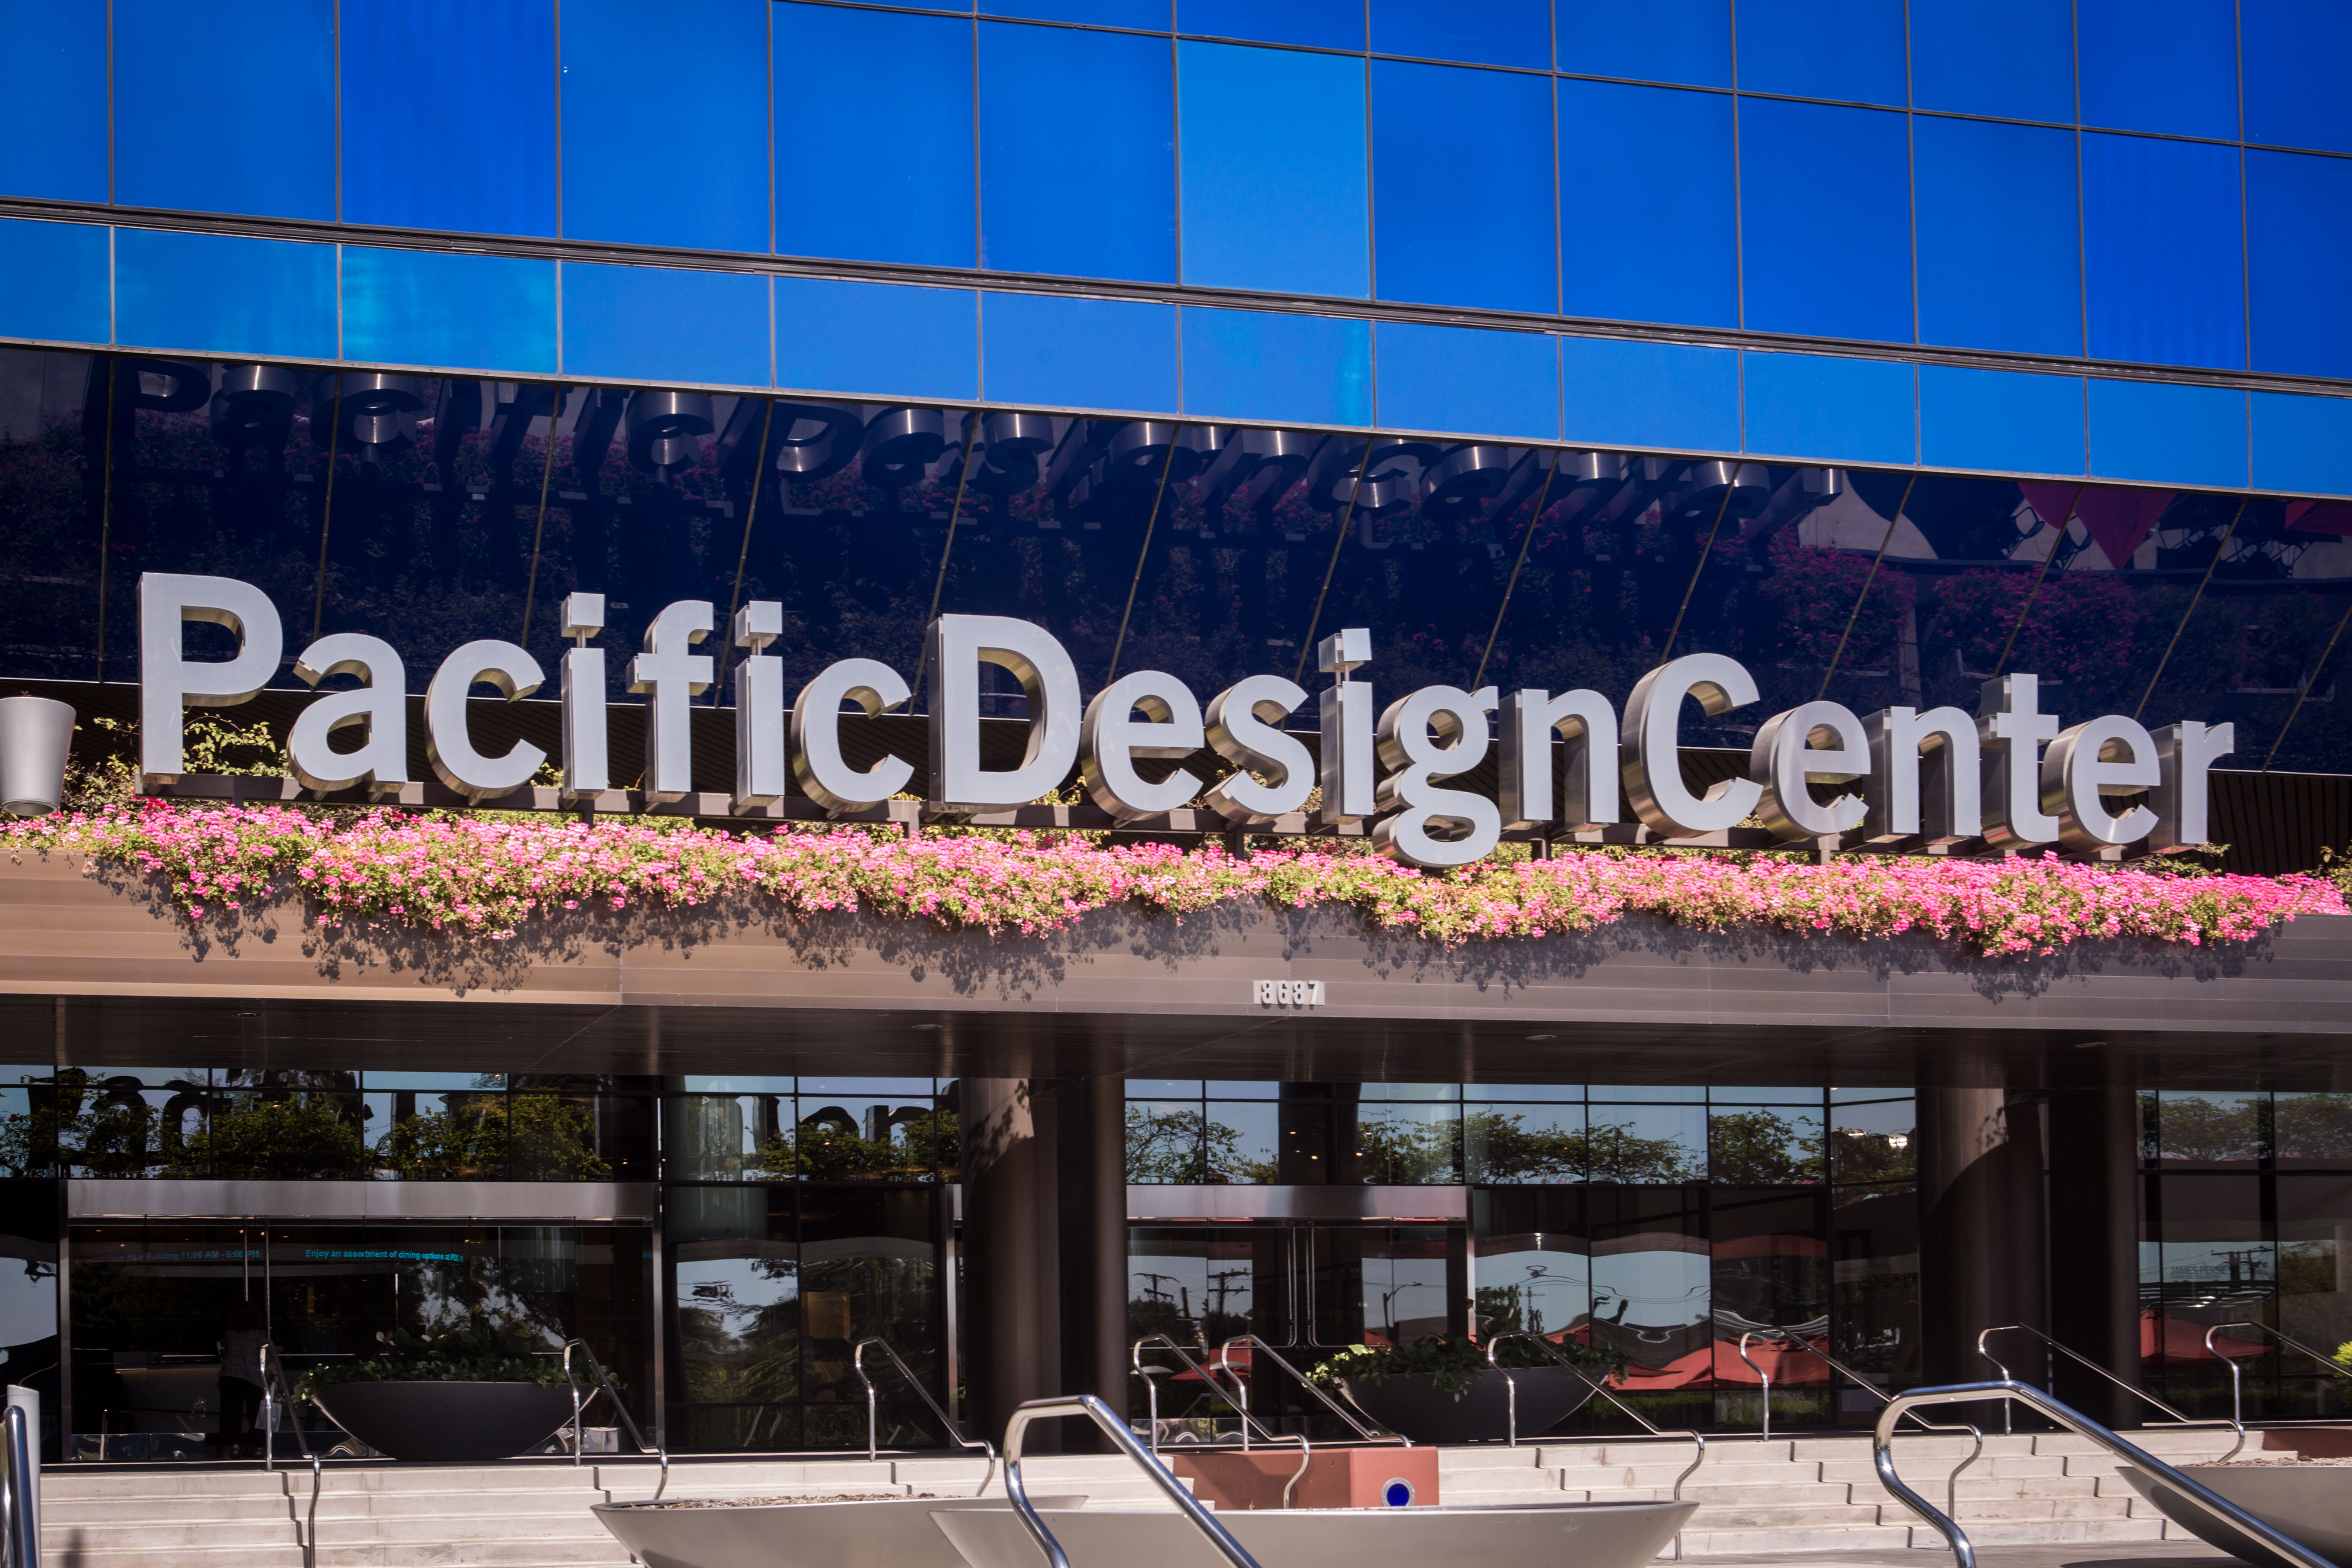 PDC Has Recently Welcomed Five International Showrooms In The Furniture,  Fabric, Wallcoverings, Theater And Accessory Categories.